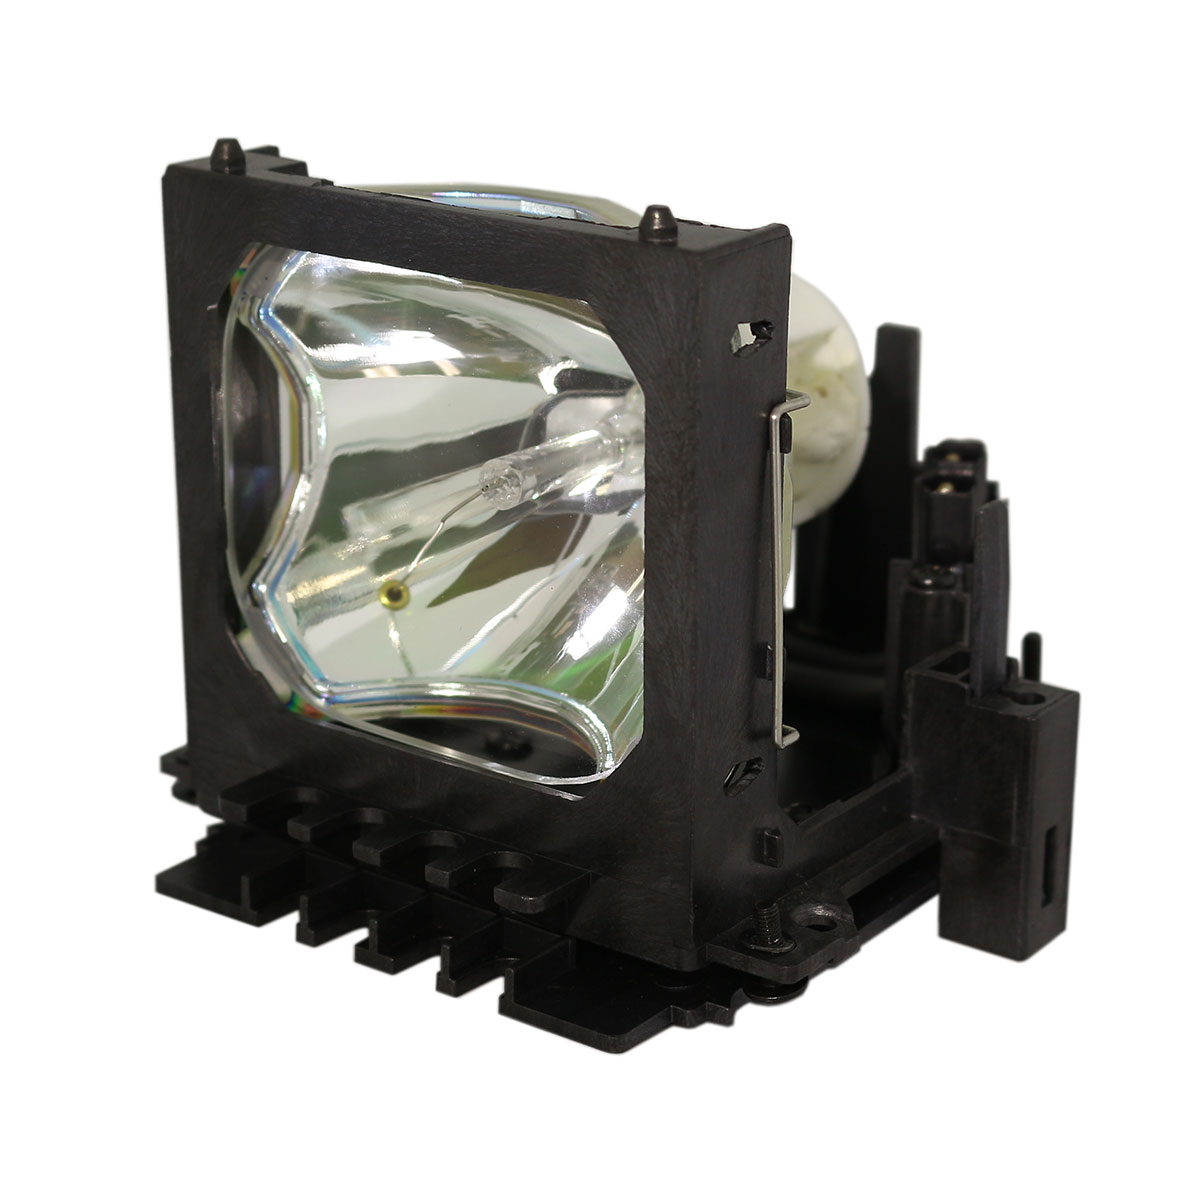 Lamp Housing For Dukane 456240 / 456240 Projector DLP LCD Bulb